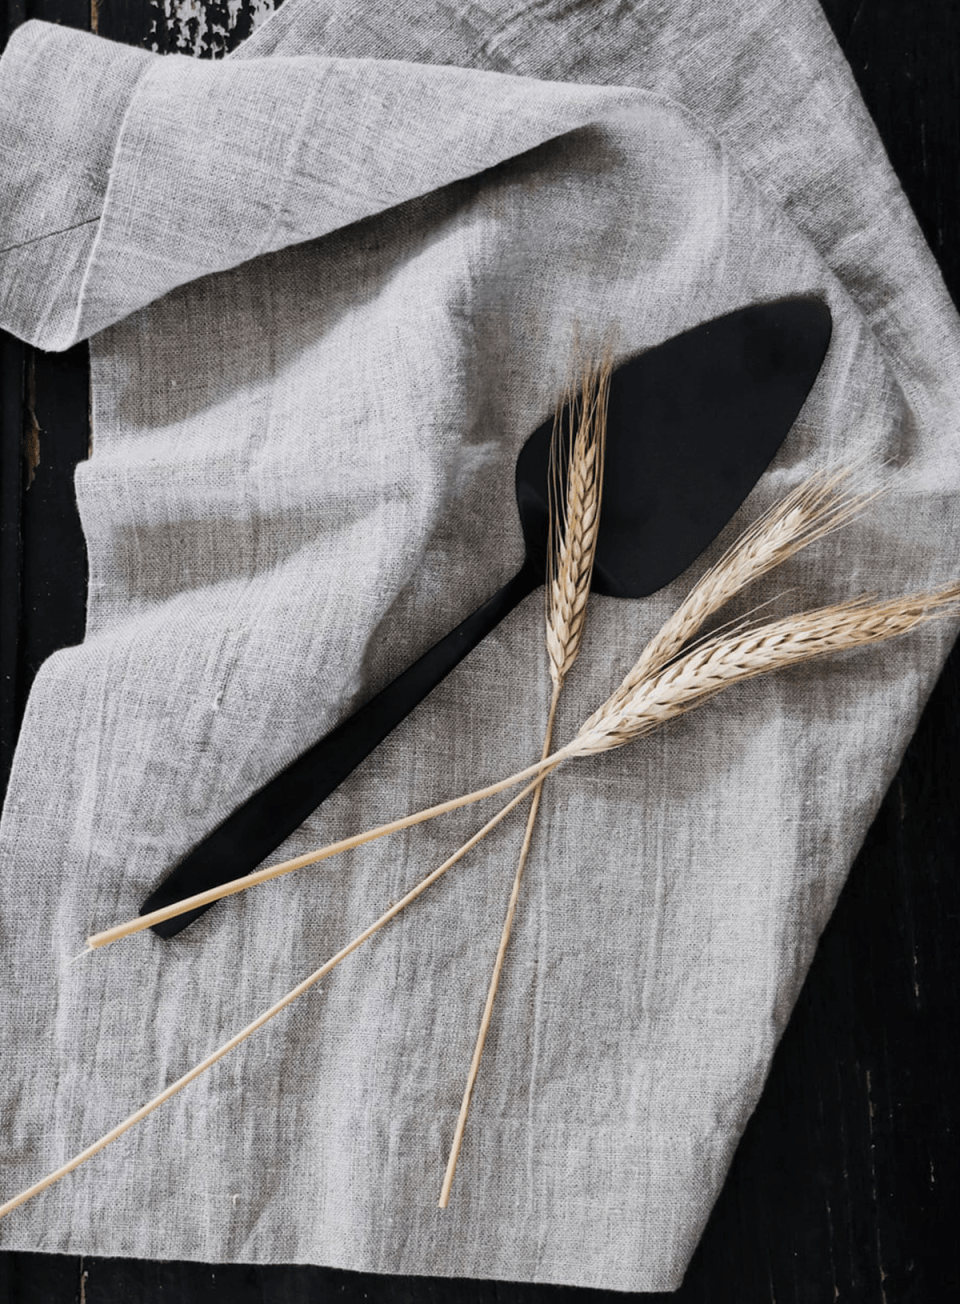 three stalks of wheat laying on a rustic linen napkin next to a pie server with a black finish